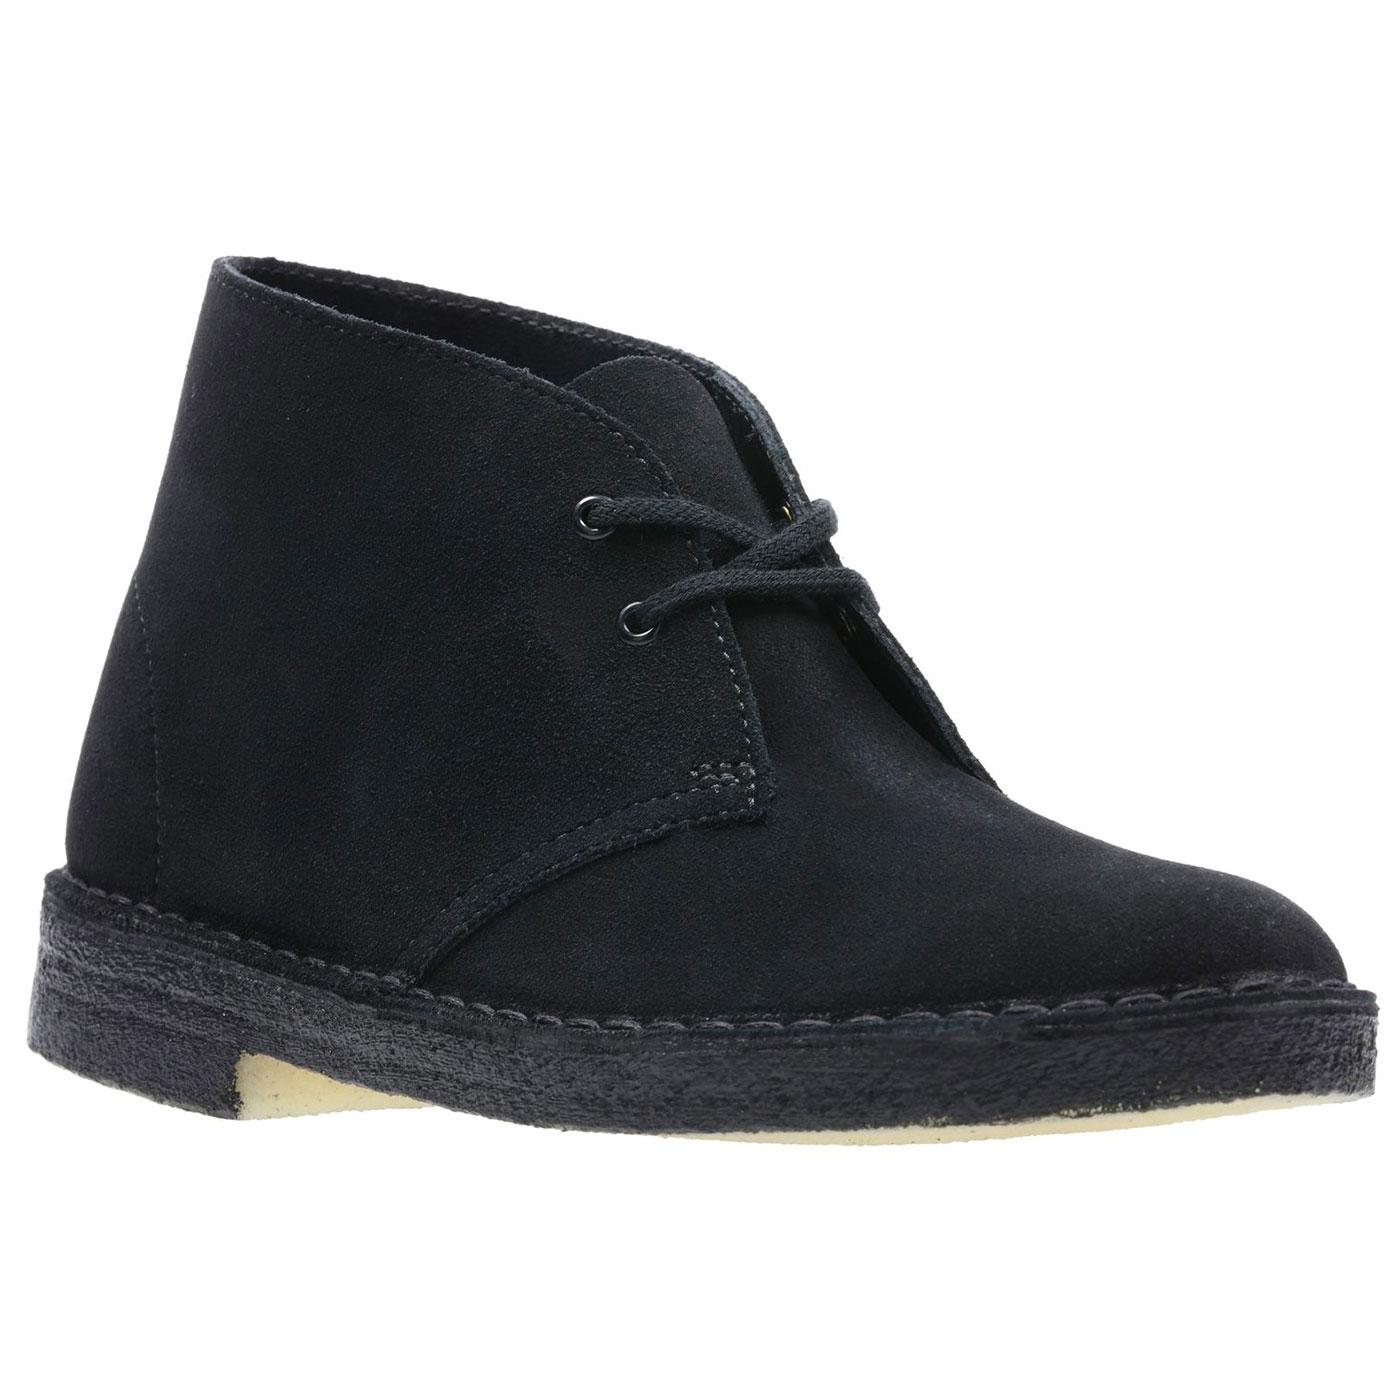 CLARKS ORIGINALS Women's Desert Boots in Black